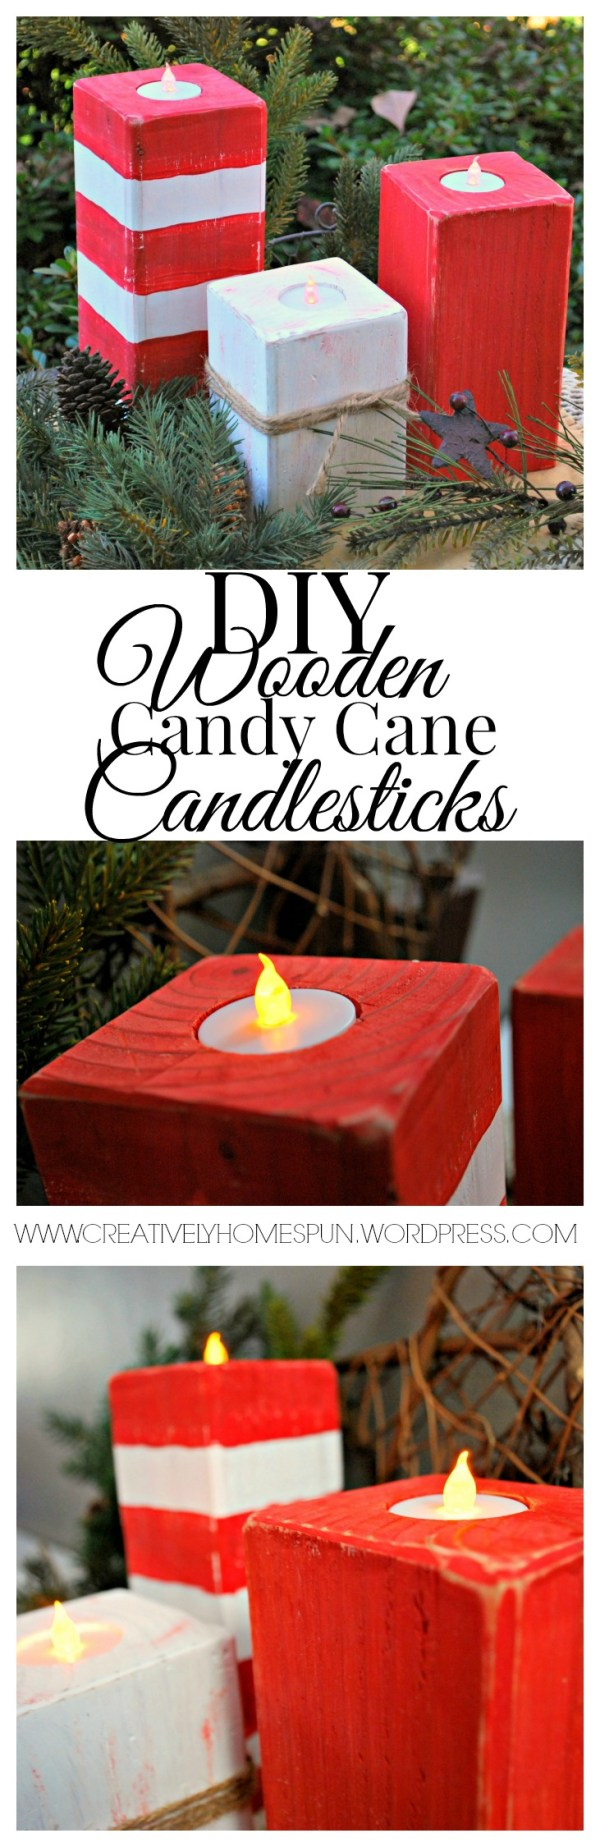 #HomeForChristmas Blog Hop!! Hosted by #hometalk and #countrylivingmagazine I'm showing off my DIY Wooden Candy Cane Candlesticks!